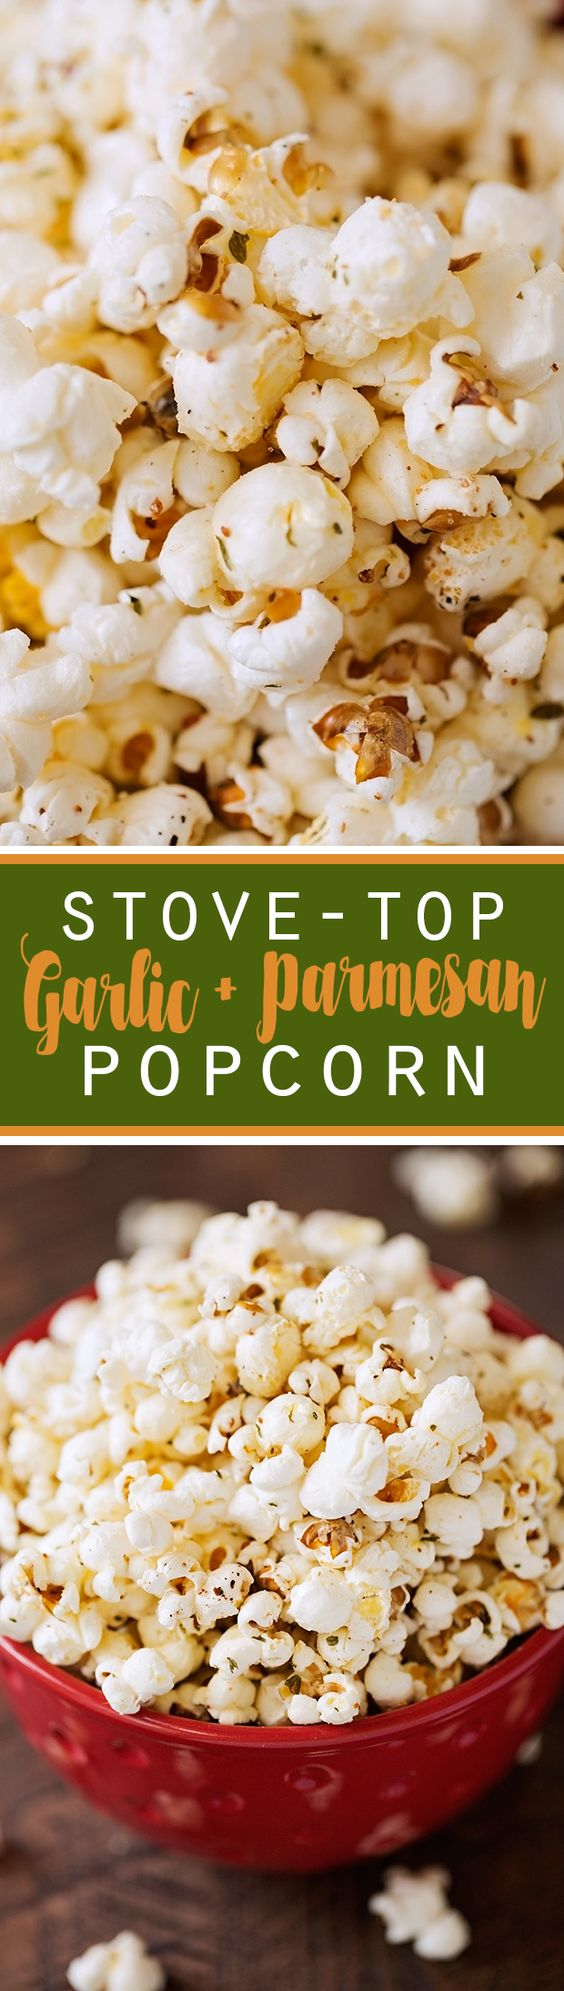 Garlic Parmesan Stove-Top Popcorn - So simple to make and so yummy! #popcorn #garlicparmesanpopcorn #garlicbutterpopcorn | Littlespicejar.com